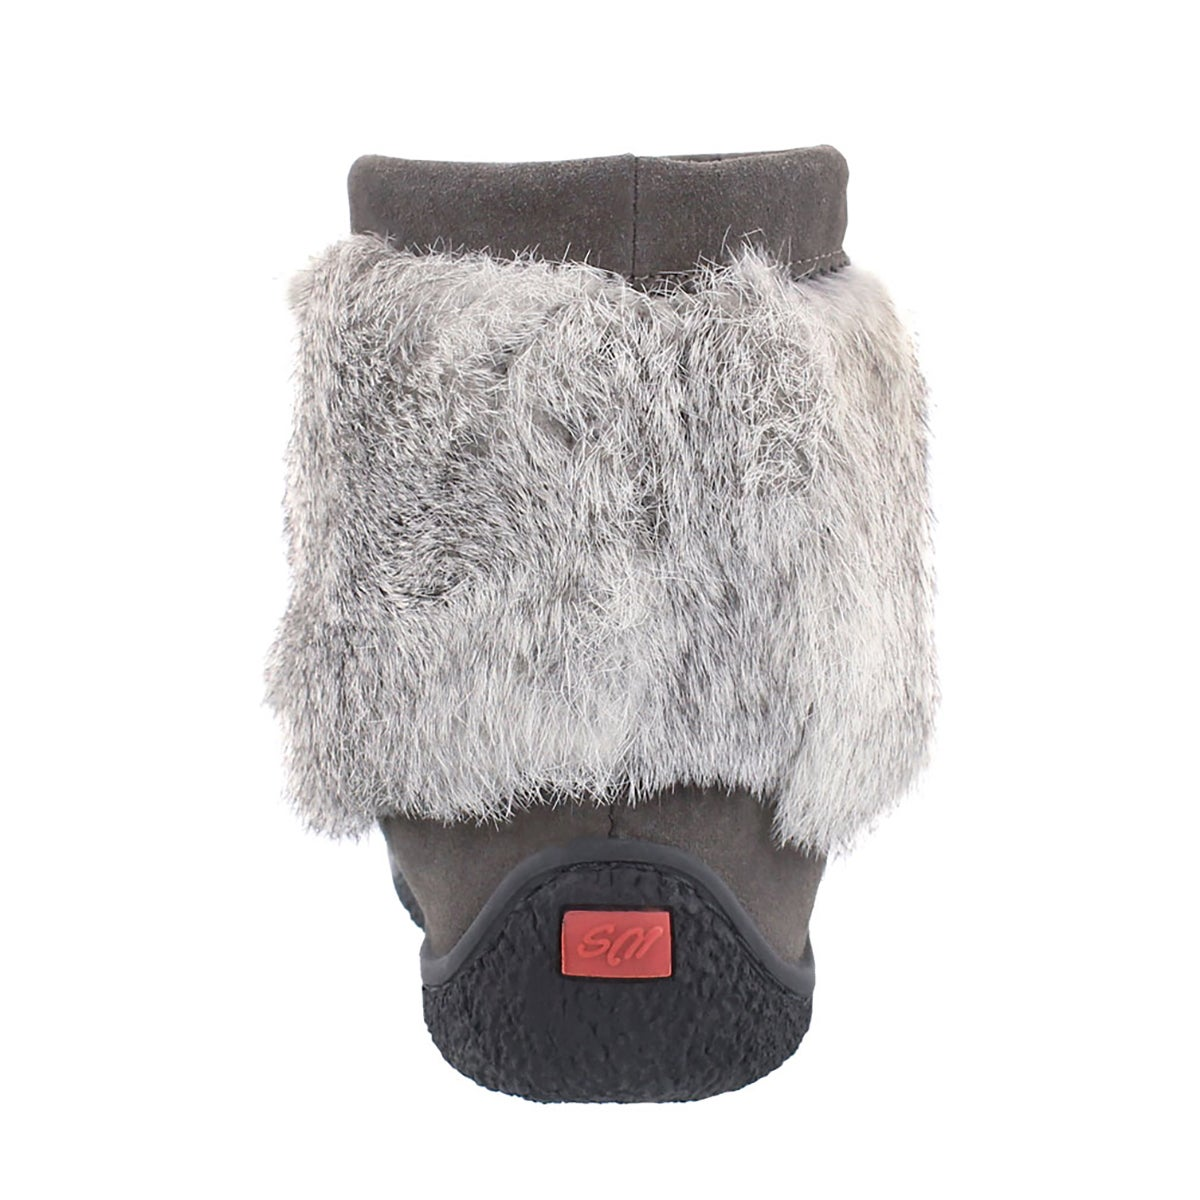 Lds Minimuk grey rabbit fur bootie